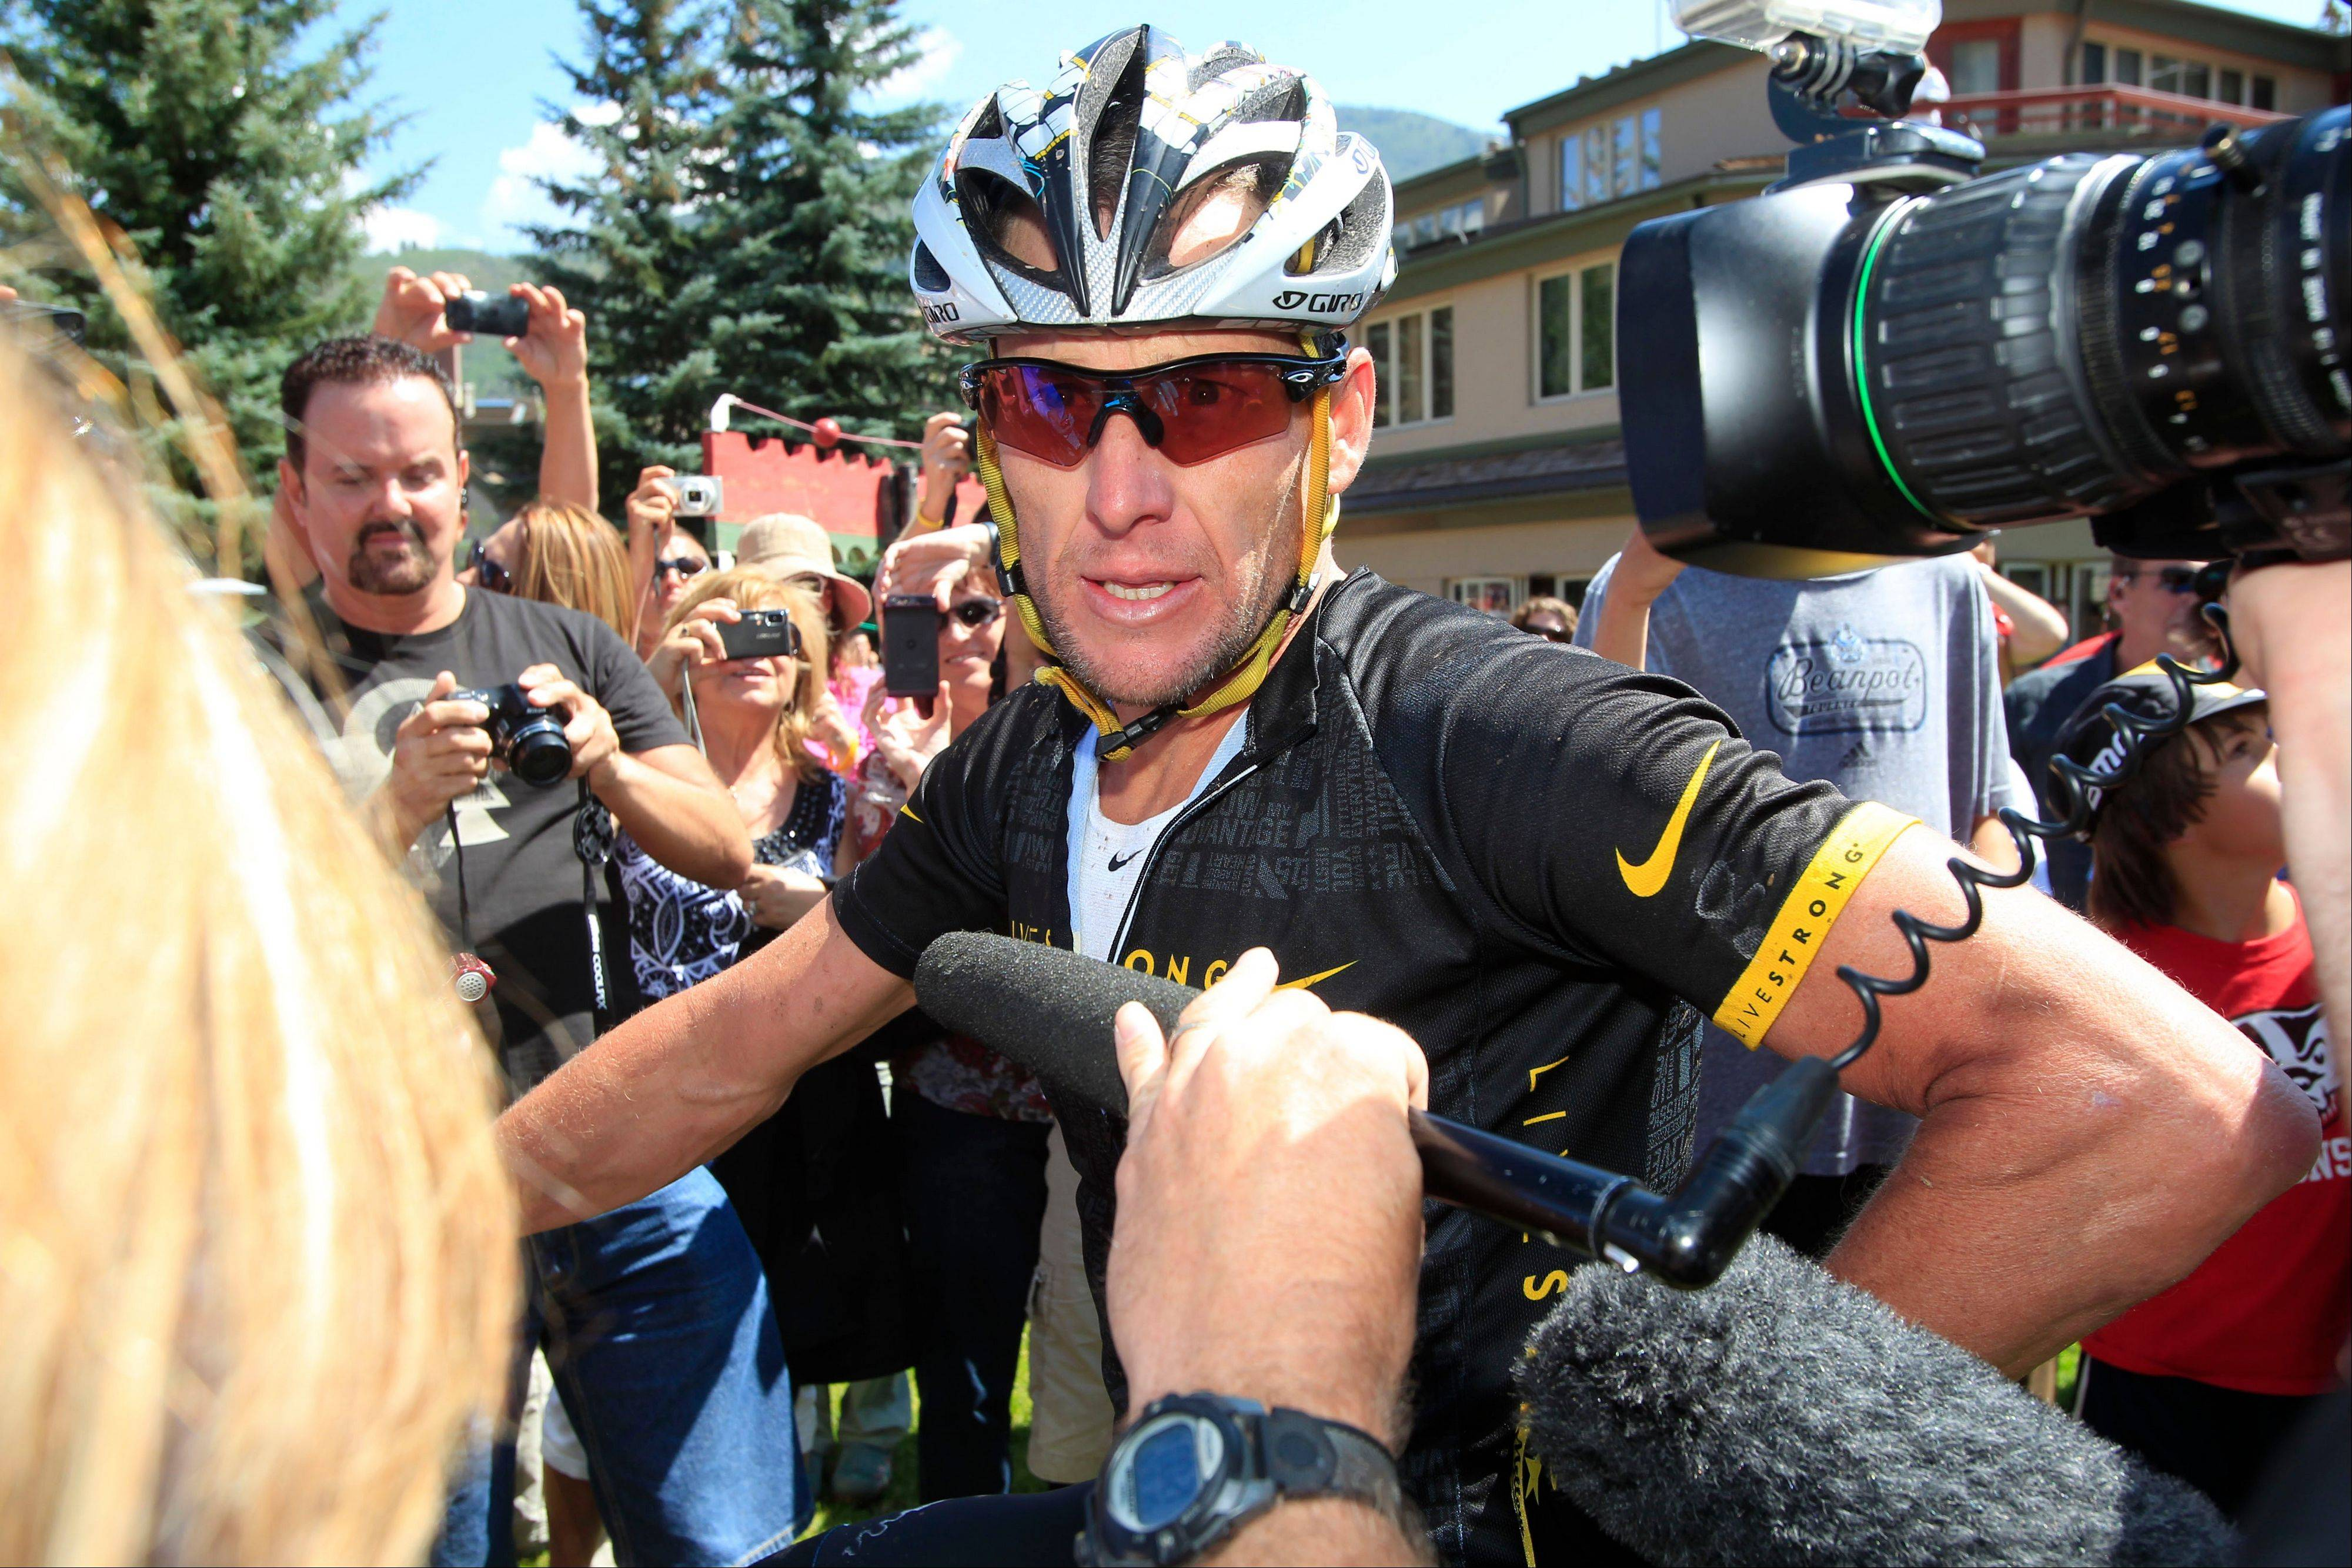 Nike Inc. is cutting ties with the Livestrong cancer charity founded by Armstrong. The move by the sports company is the latest fallout in the doping scandal surrounding the former cyclist, who now admits he used performance-enhancing drugs to win the Tour de France seven times.